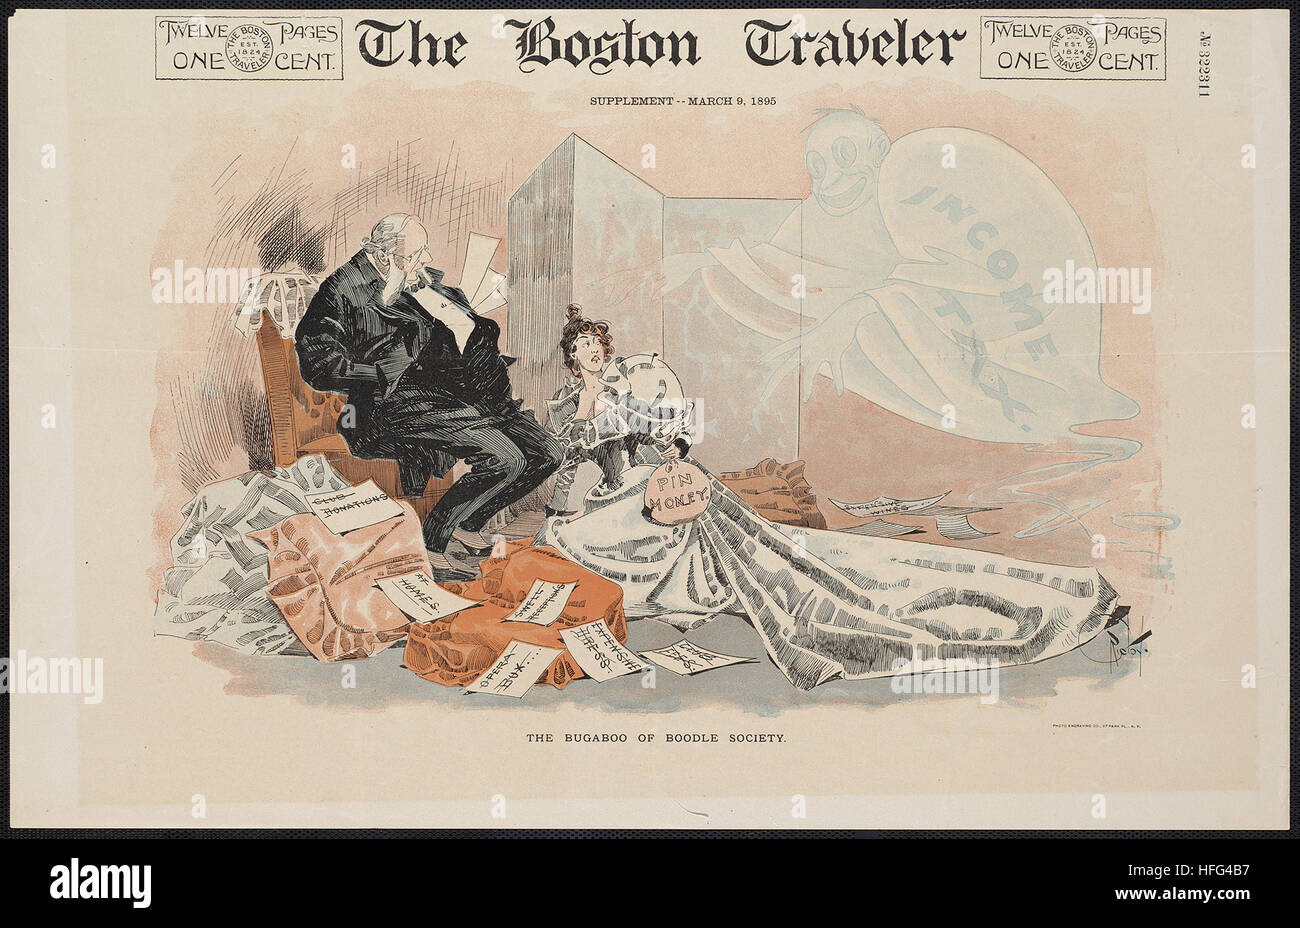 The Boston traveler, supplement -- March 9, 1895 - Stock Image